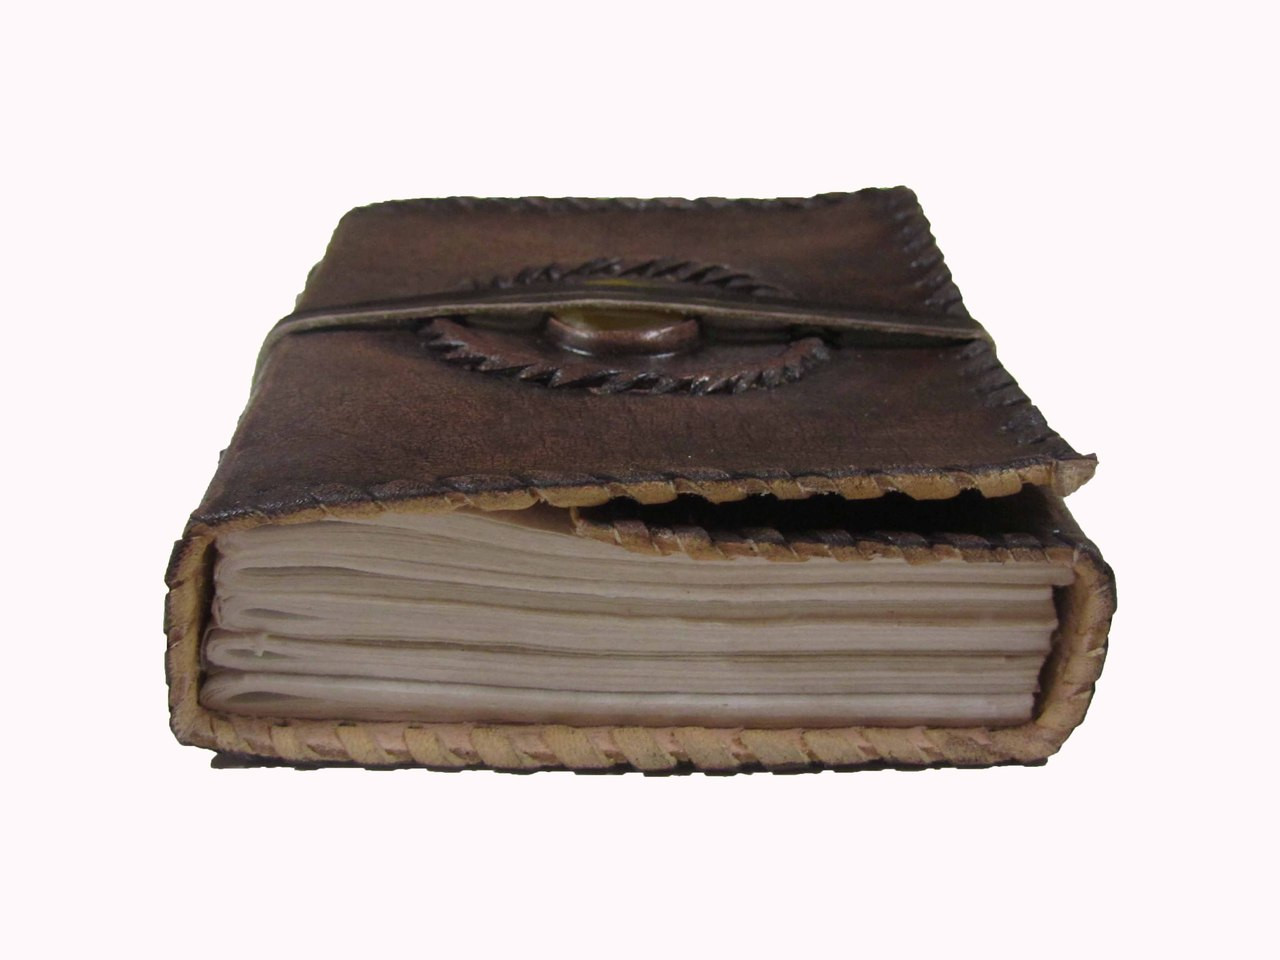 stitched leather journal with yellow stone centre piece embedding into cover - paper view